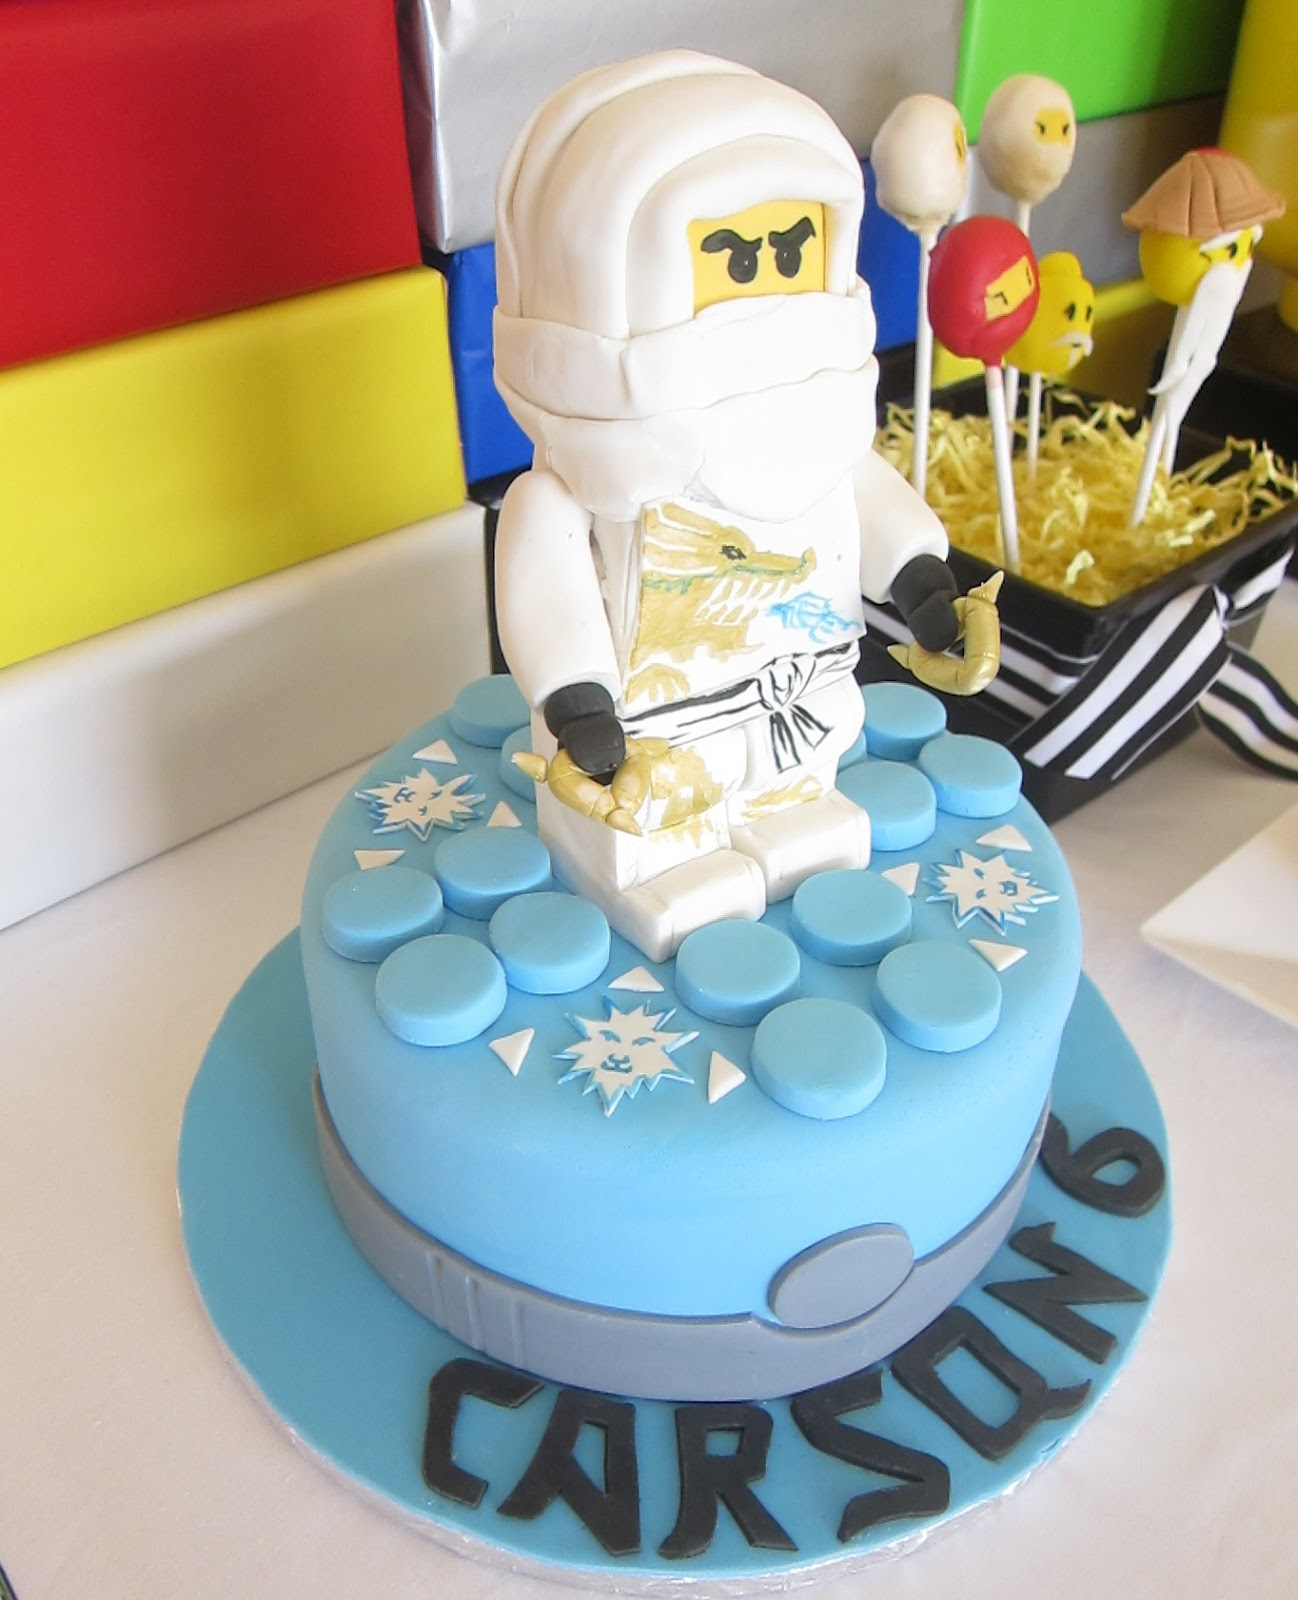 Super Ninjago Cakes Decoration Ideas Little Birthday Cakes Funny Birthday Cards Online Inifofree Goldxyz